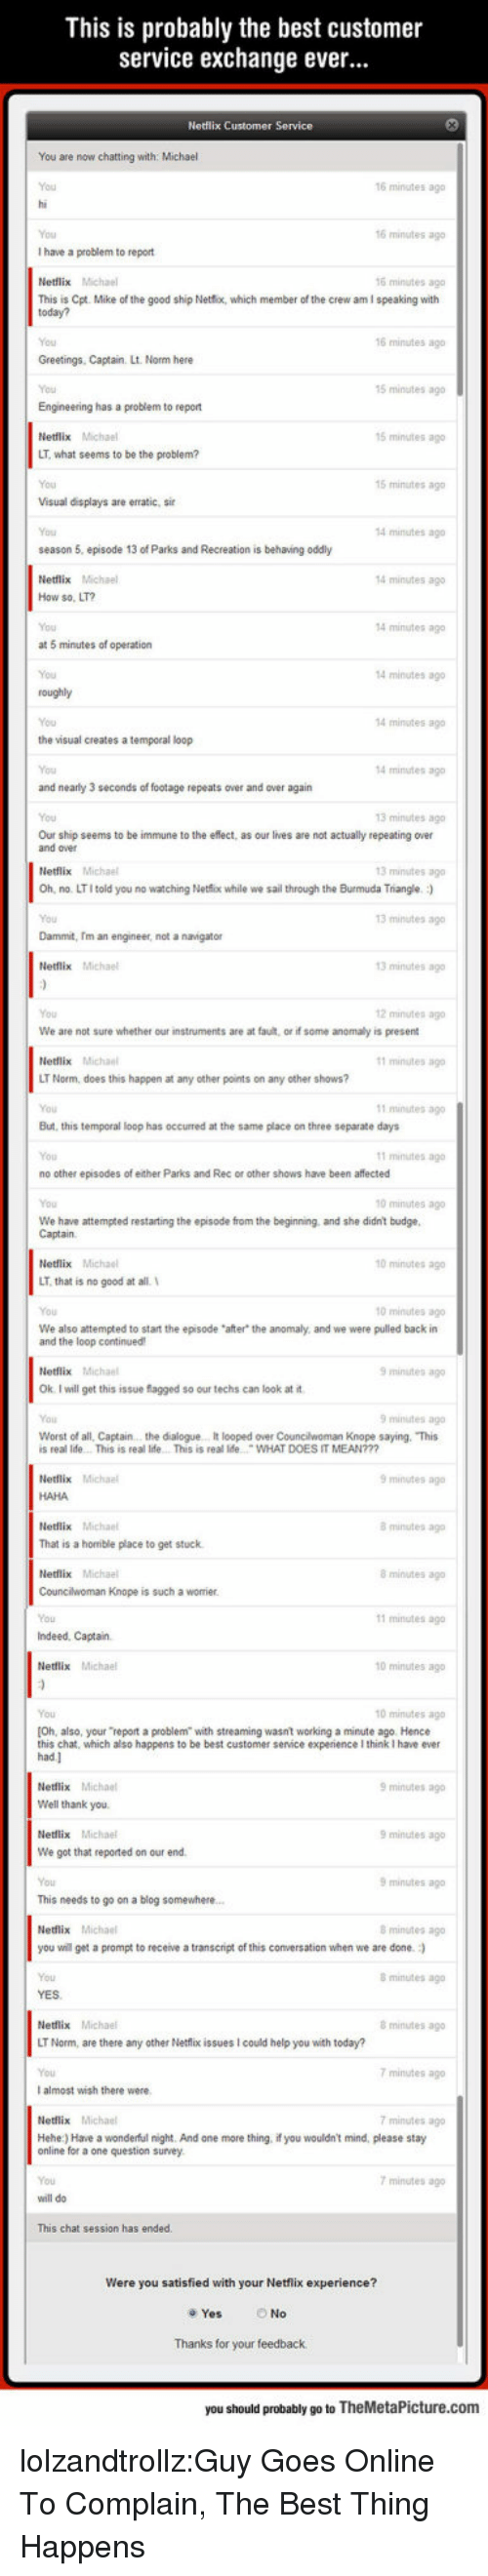 "Ether, Netflix, and Parks and Recreation: This is probably the best customer  service exchange ever...  Netflix Customer Service  You are now chatting with: Michael  16 minutes ago  You  I have a problem to report  Netilix Michael  This is Cpt. Mike of the good ship Netfiox, which member of the crew am I speaking with  6 minutes ag  6 minutes ag  You  6 minutes ago  Greetings, Captain. Lt. Norm here  15 minutes ago  Engineering has a problem to report  Netflix Michael  LT, what seems to be the problem?  15 minutes ago  5 minutes ag  Visual displays are erratic, sir  4 minutes ago  season 5, episode 13 of Parks and Recreation is behaving oddly  Netflix Michael  How so, LT?  You  at 5 minutes of operation  You  4 minutes ago  4 minutes ago  14 minutes ago  4 minutes ago  the visual creates a temporal loop  4 minutes ag  and nearly 3 seconds of footage repeats over and over again  3 minutes ago  Our ship seems to be immune to the eflect, as our lves are not actually repeating over  and over  Netflix Michael  Oh, no. LTI told you no watching Netfiox while we sail through the Burmuda Triangle. )  3 minstes a  3 minutes ago  Dammit, m an engineer, not a navigator  Netflix Michael  3 minutes ago  2 minutes ago  We are not sure whether our instruments are at fault, or if some anomaly is present  Netflix Micha  LT Norm, does this happen at any other points on any other shows?  minutes ago  11 สunutes ago  But, this temporal loop has occurred at the same place on three separate days  You  no other episodes of ether Parks and Rec or other shows have been affected  You  We have attempted restarting the episode from the beginning, and she didn't budge  minutes ag  0 minutes ago  0 minutes ago  Netflix Micha  LT. that is no good at all.  0 minutes ag  We also attempted to start the episode ""after the anomaly, and we were pulled back in  and the loop continued  minsites ag  Ok. I will get this issue fagged so our techs can look at it  minutes ag  Worst of all, Captain.. the dalogue . It looped over Councilwoman Knope saying, This  s real lide. This is real Ide. This is real lde WHAT DOES IT MEAN?  Netflix Michal  minutes ag  HAHA  Netlix Michal  That is a homible place to get stuck  Netflix Michaal  Councilwoman Knope is such a worrier  minutes ag  8 minutes ago  1 minutes ag  Indeed, Captain.  Netlix Michael  0 minutes ago  0 minutes ago  [Oh, also, your report a problem with streaming wasn't working a minute ago. Hence  this chat, which also happens to be best customer senice experience I think I have ever  minutes ago  Well thank you.  Netllix Michael  We got that reported on our end  minutes ag  minutes ago  This needs to go on a blog somewhere  minutes ag  you will get a prompt to receive a transcript of this conversation when we are done.  8minutes ago  Netflix Michael  LT Norm, are there any other Netflix issues I could help you with today?  You  I almost wish there were  minutes ago  7 minutes ago  minutes ago  Hehe:) Have a wonderful night. And one more thing, if you wouldn't mind, please stay  online for a one question survey  You  minutes ago  This chat session has ended  you satisfied with  your Netflix experience?  No  Thanks for your feedback  you should probably go to TheMetaPicture.com lolzandtrollz:Guy Goes Online To Complain, The Best Thing Happens"